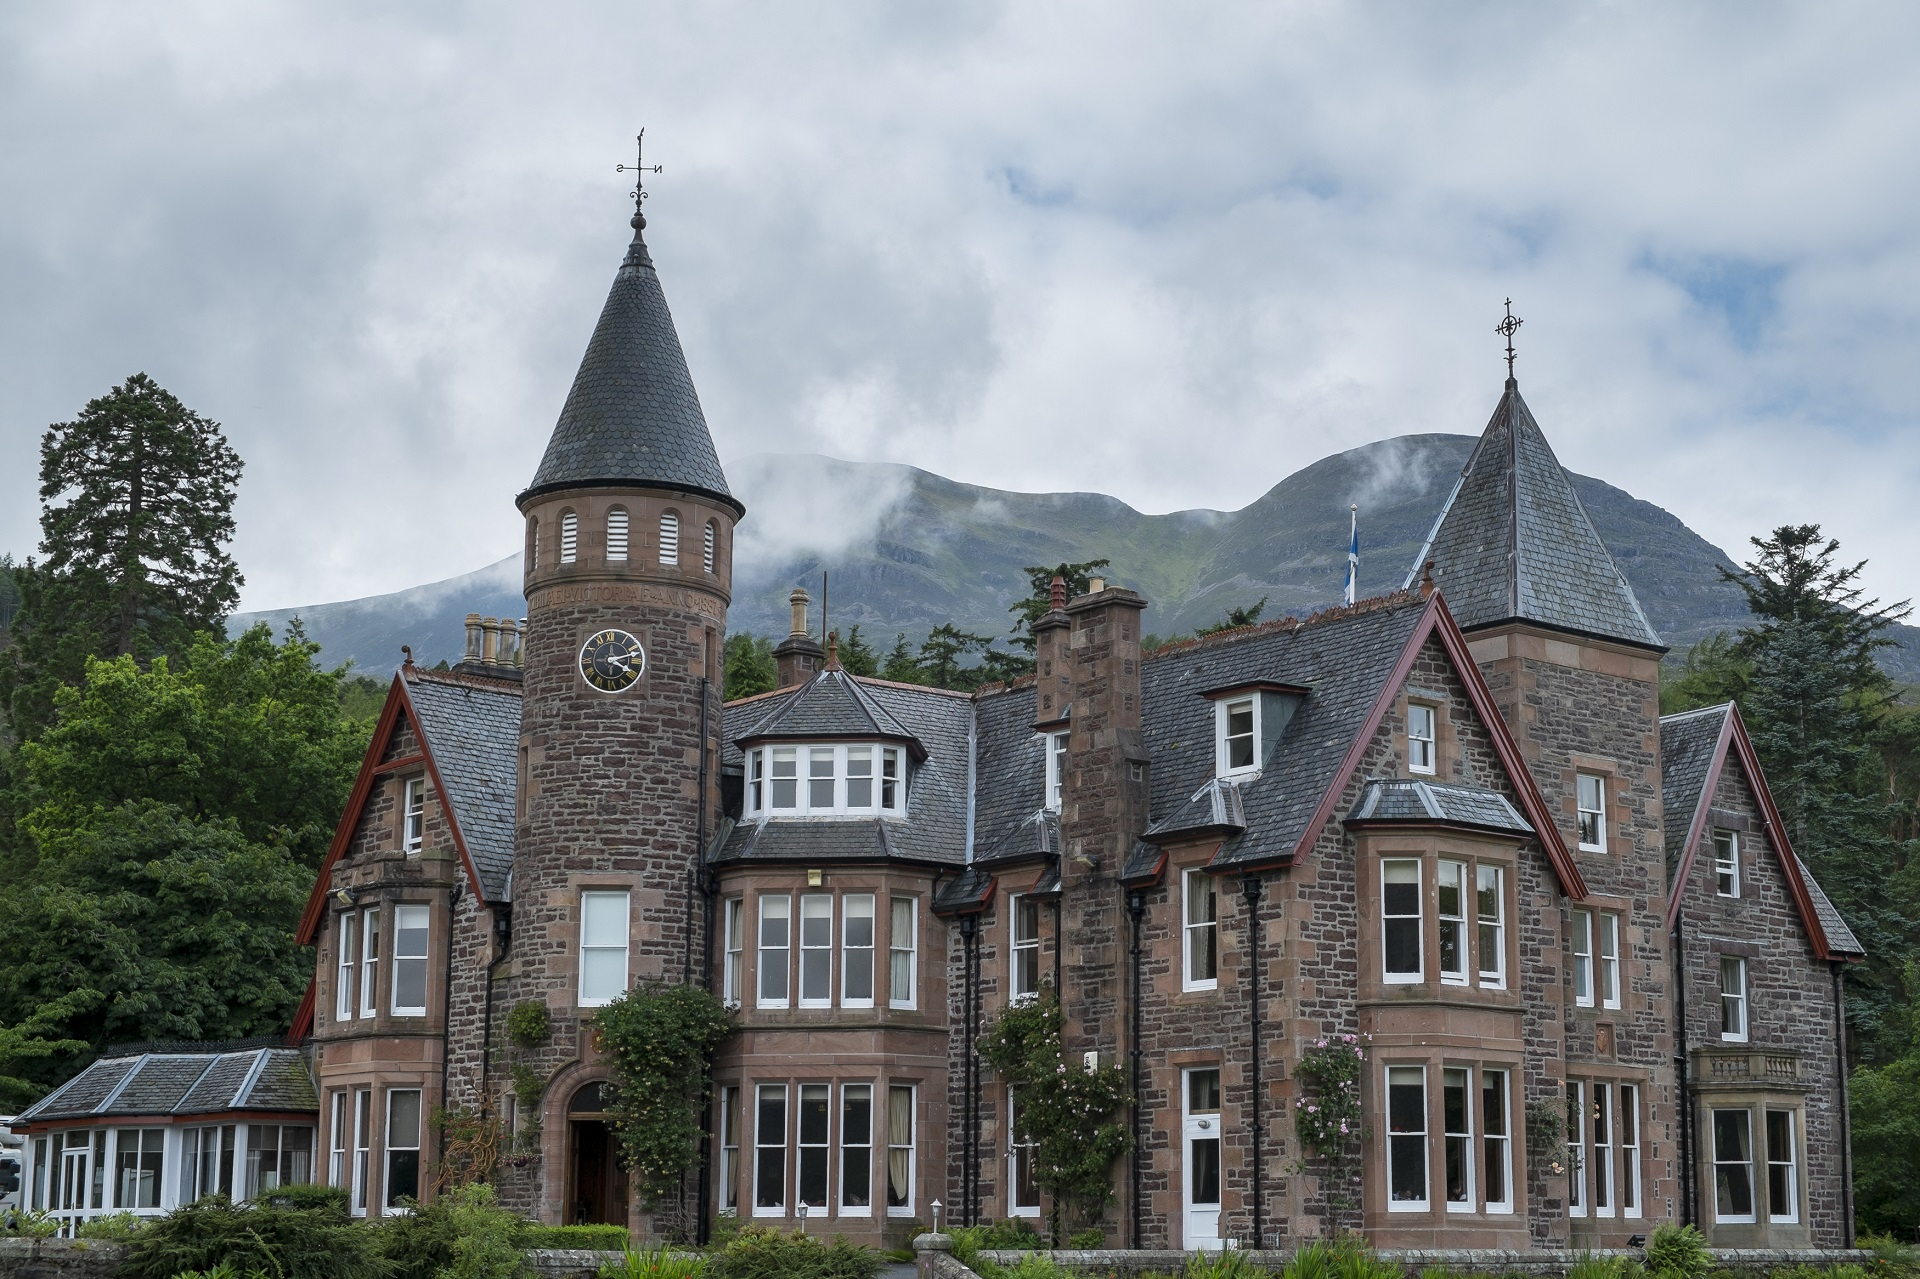 The Torridon luxury hotel